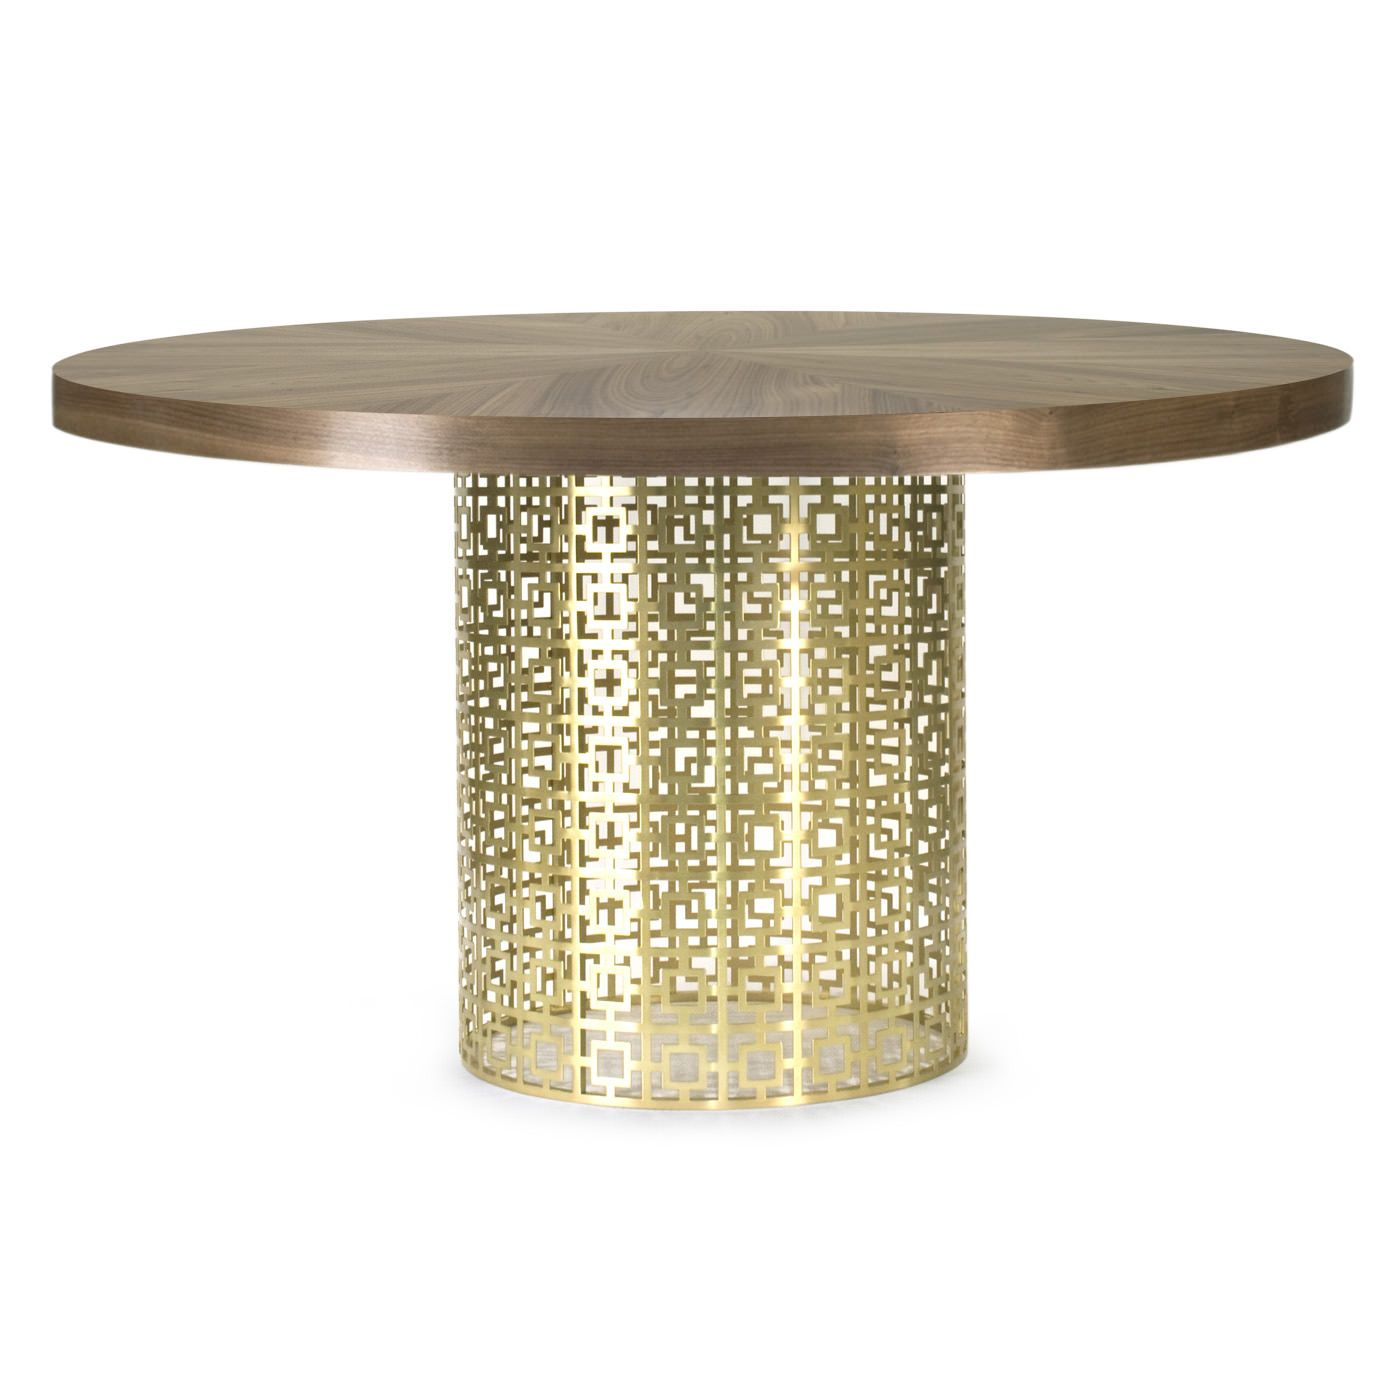 Double crank oval dining table at high fashion home industrial chic - Walnut Veneer And Brushed Brass Nixon Dining Table Jonathan Adler